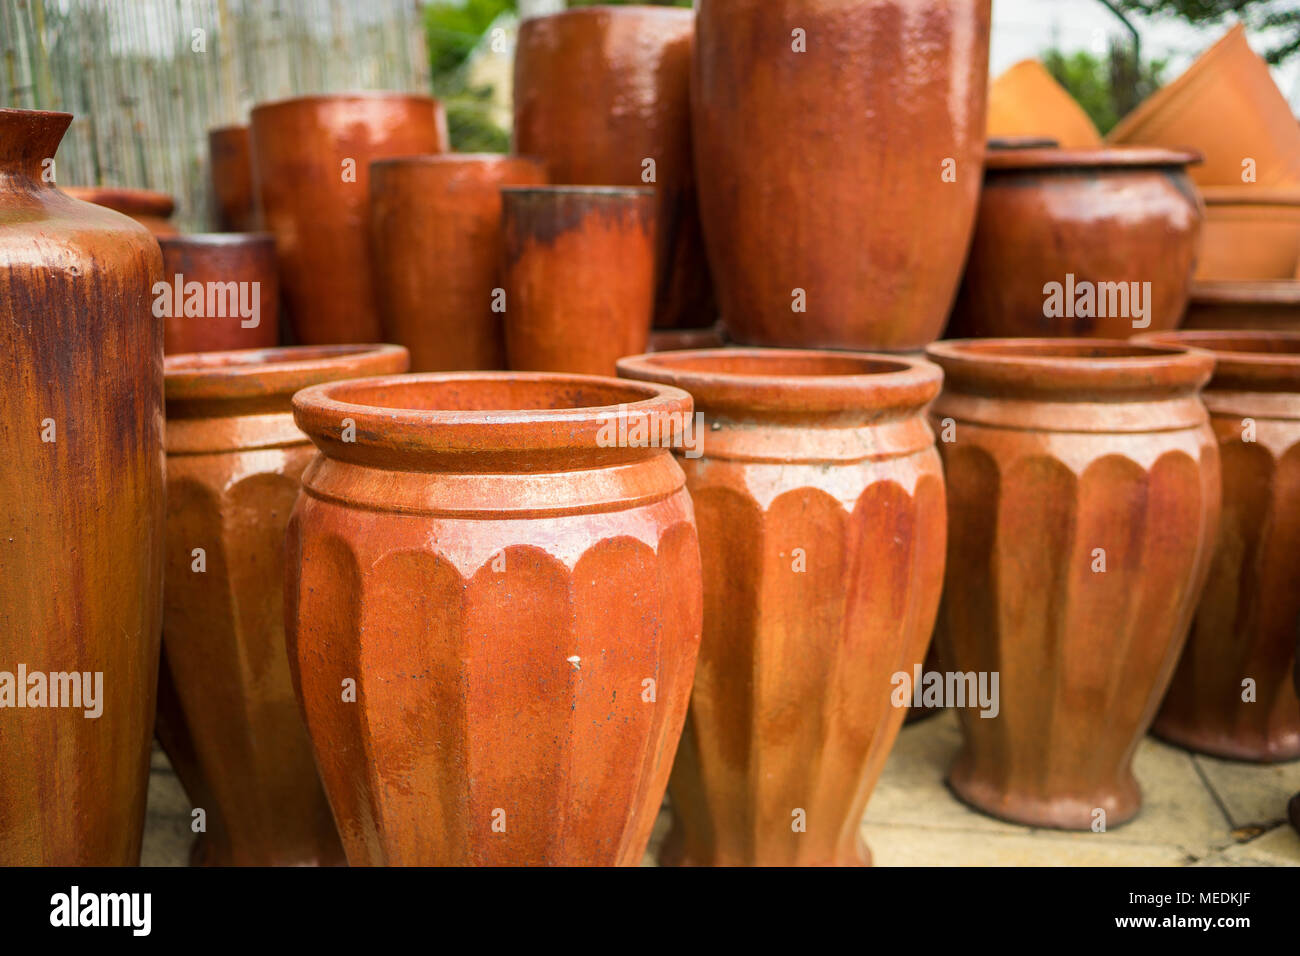 Large Ceramic Flower Pots High Resolution Stock Photography And Images Alamy